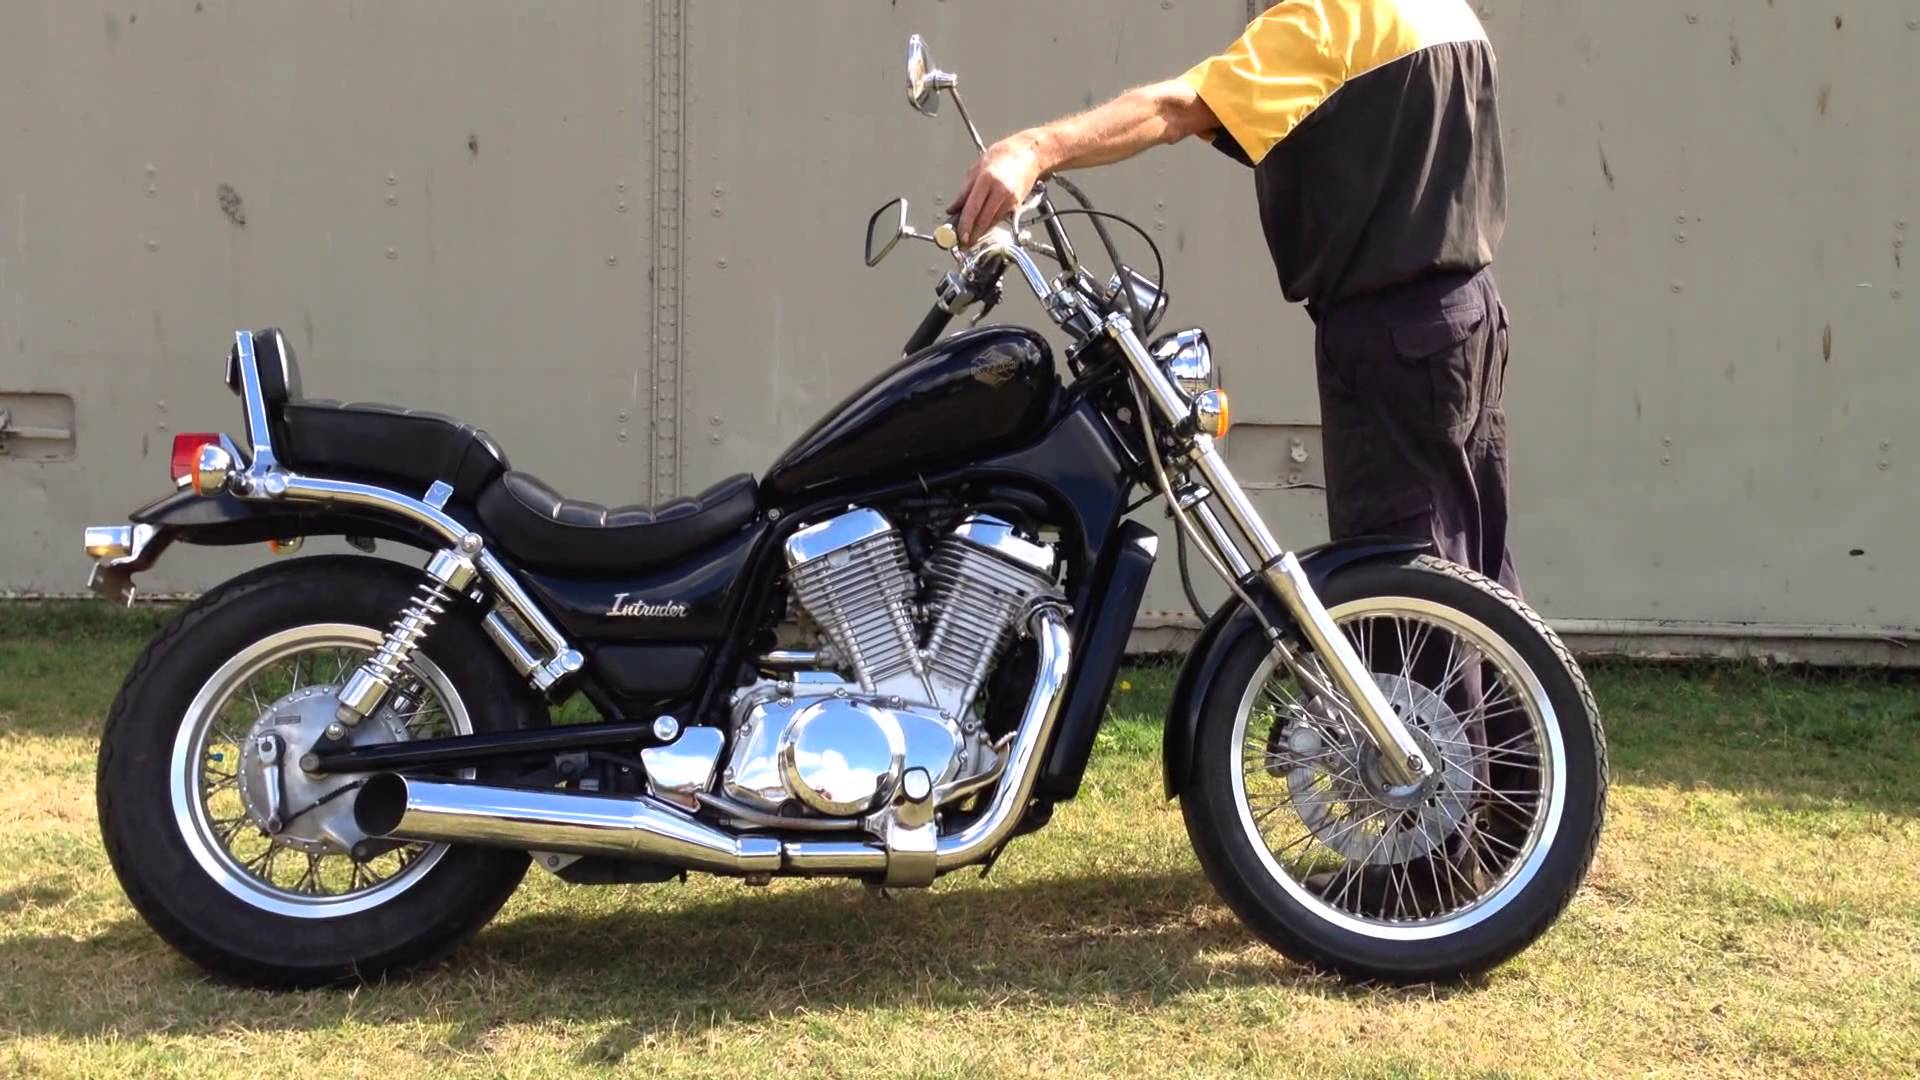 1989 Suzuki Vs 750 Intruder Pics Specs And Information